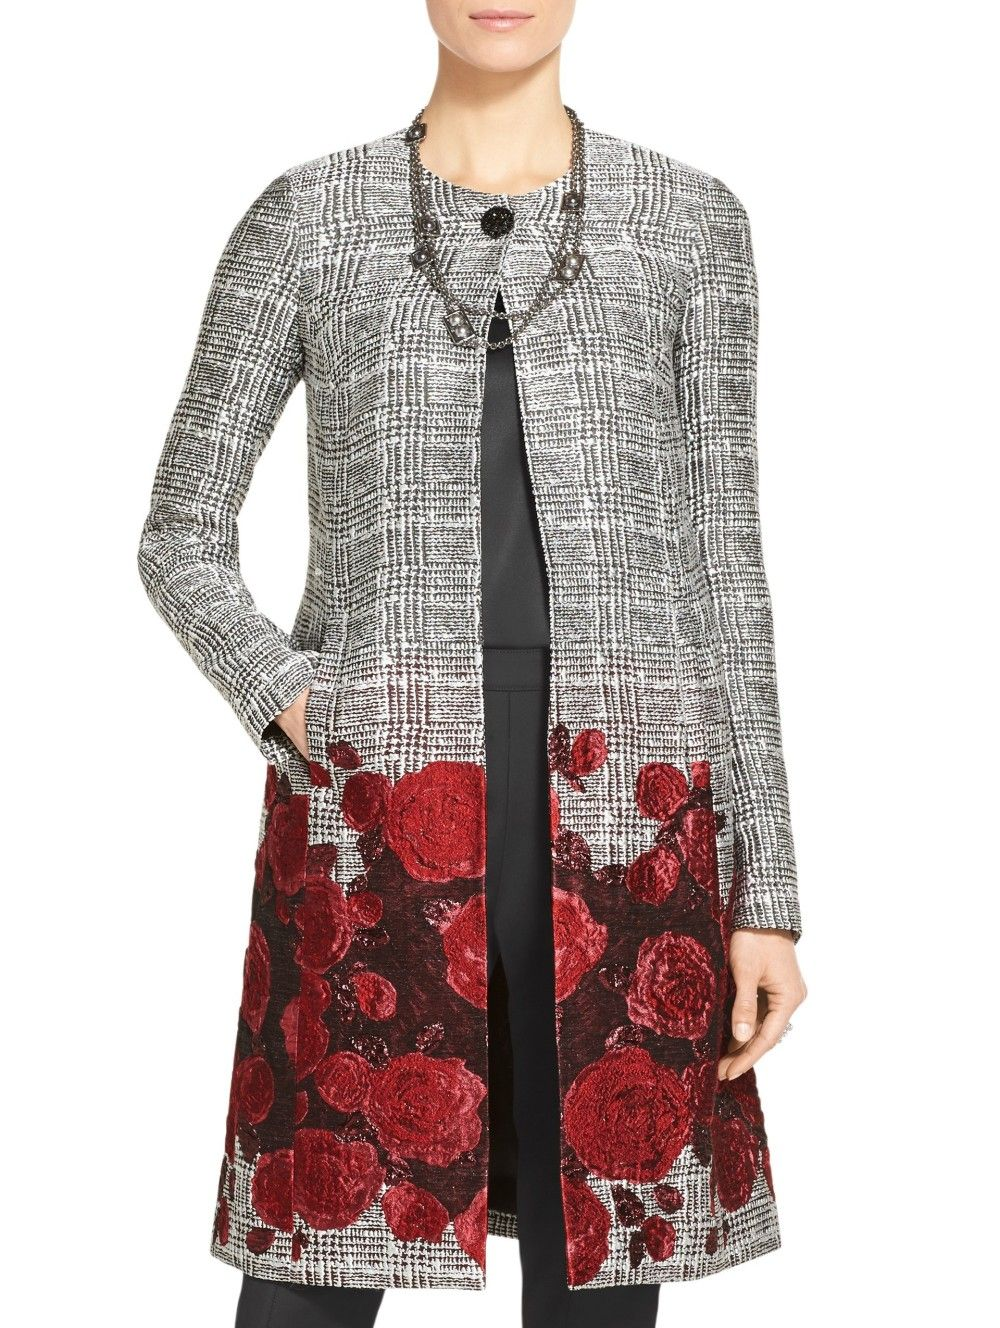 820e1cc6812d40 Plaid Rose Jacquard Topper | St. John Knits | Jacket Required ...